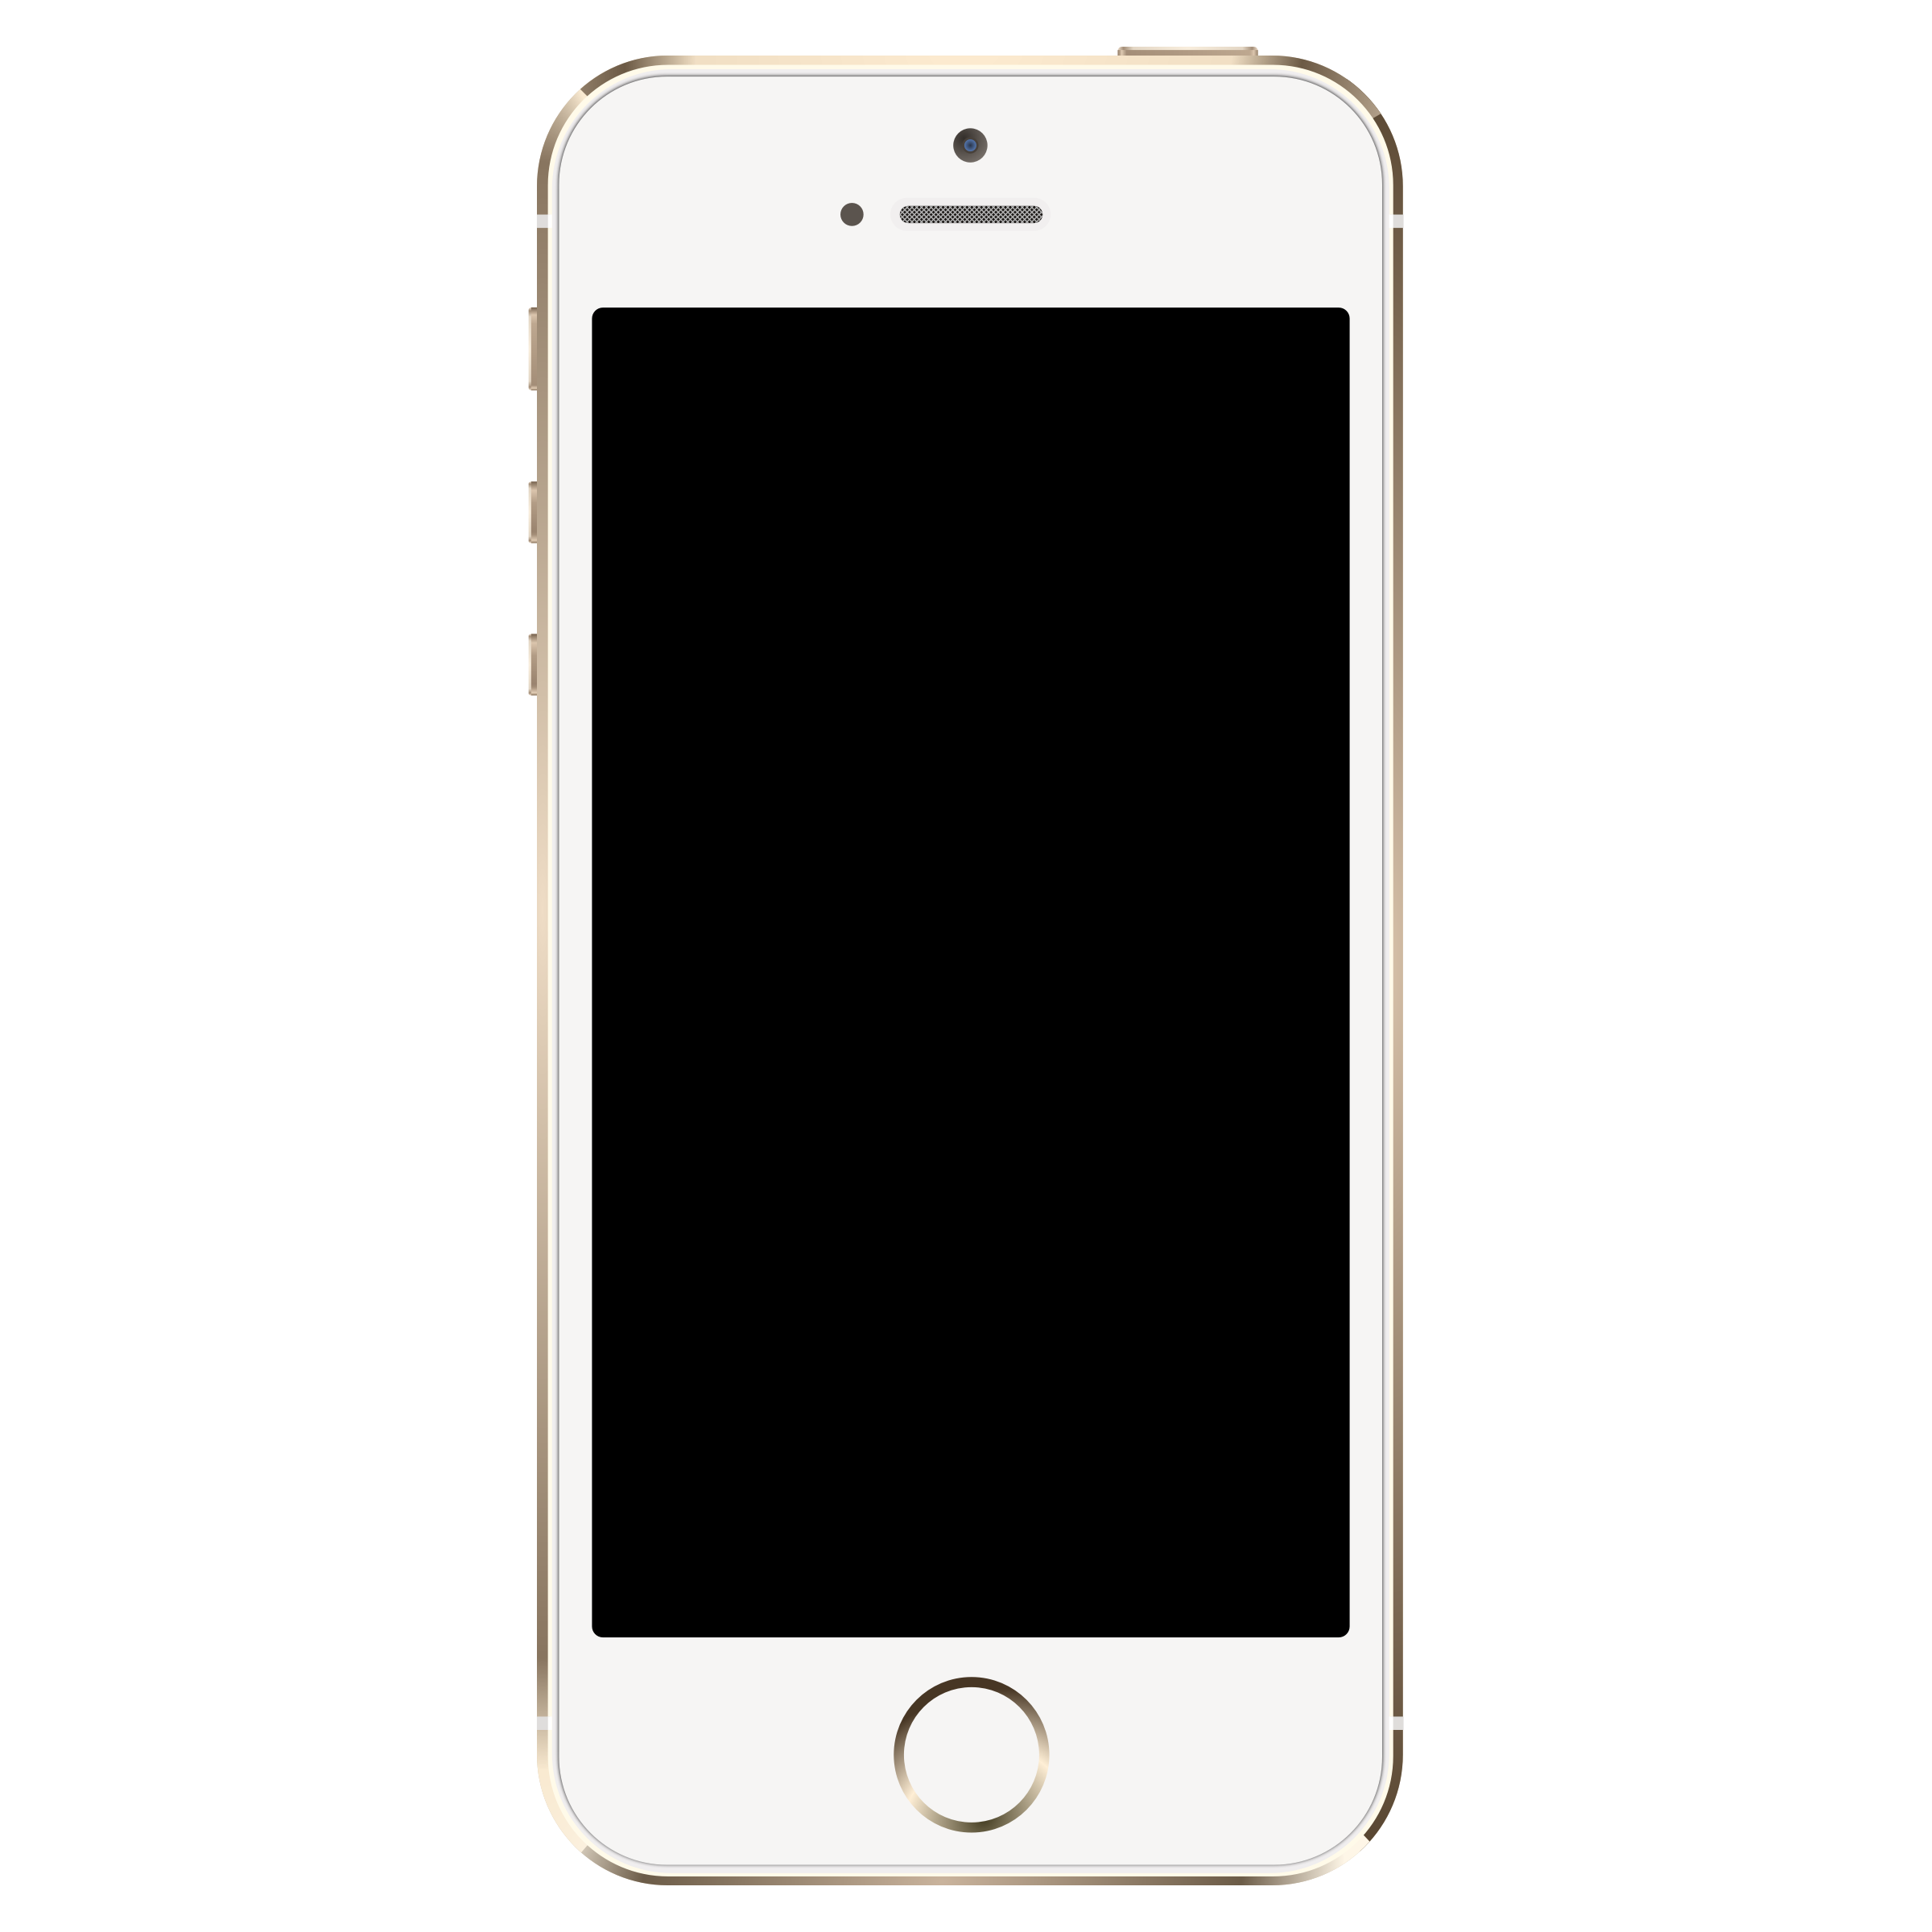 iphone 5s clip art Gallery-iphone 5s clip art Gallery-4